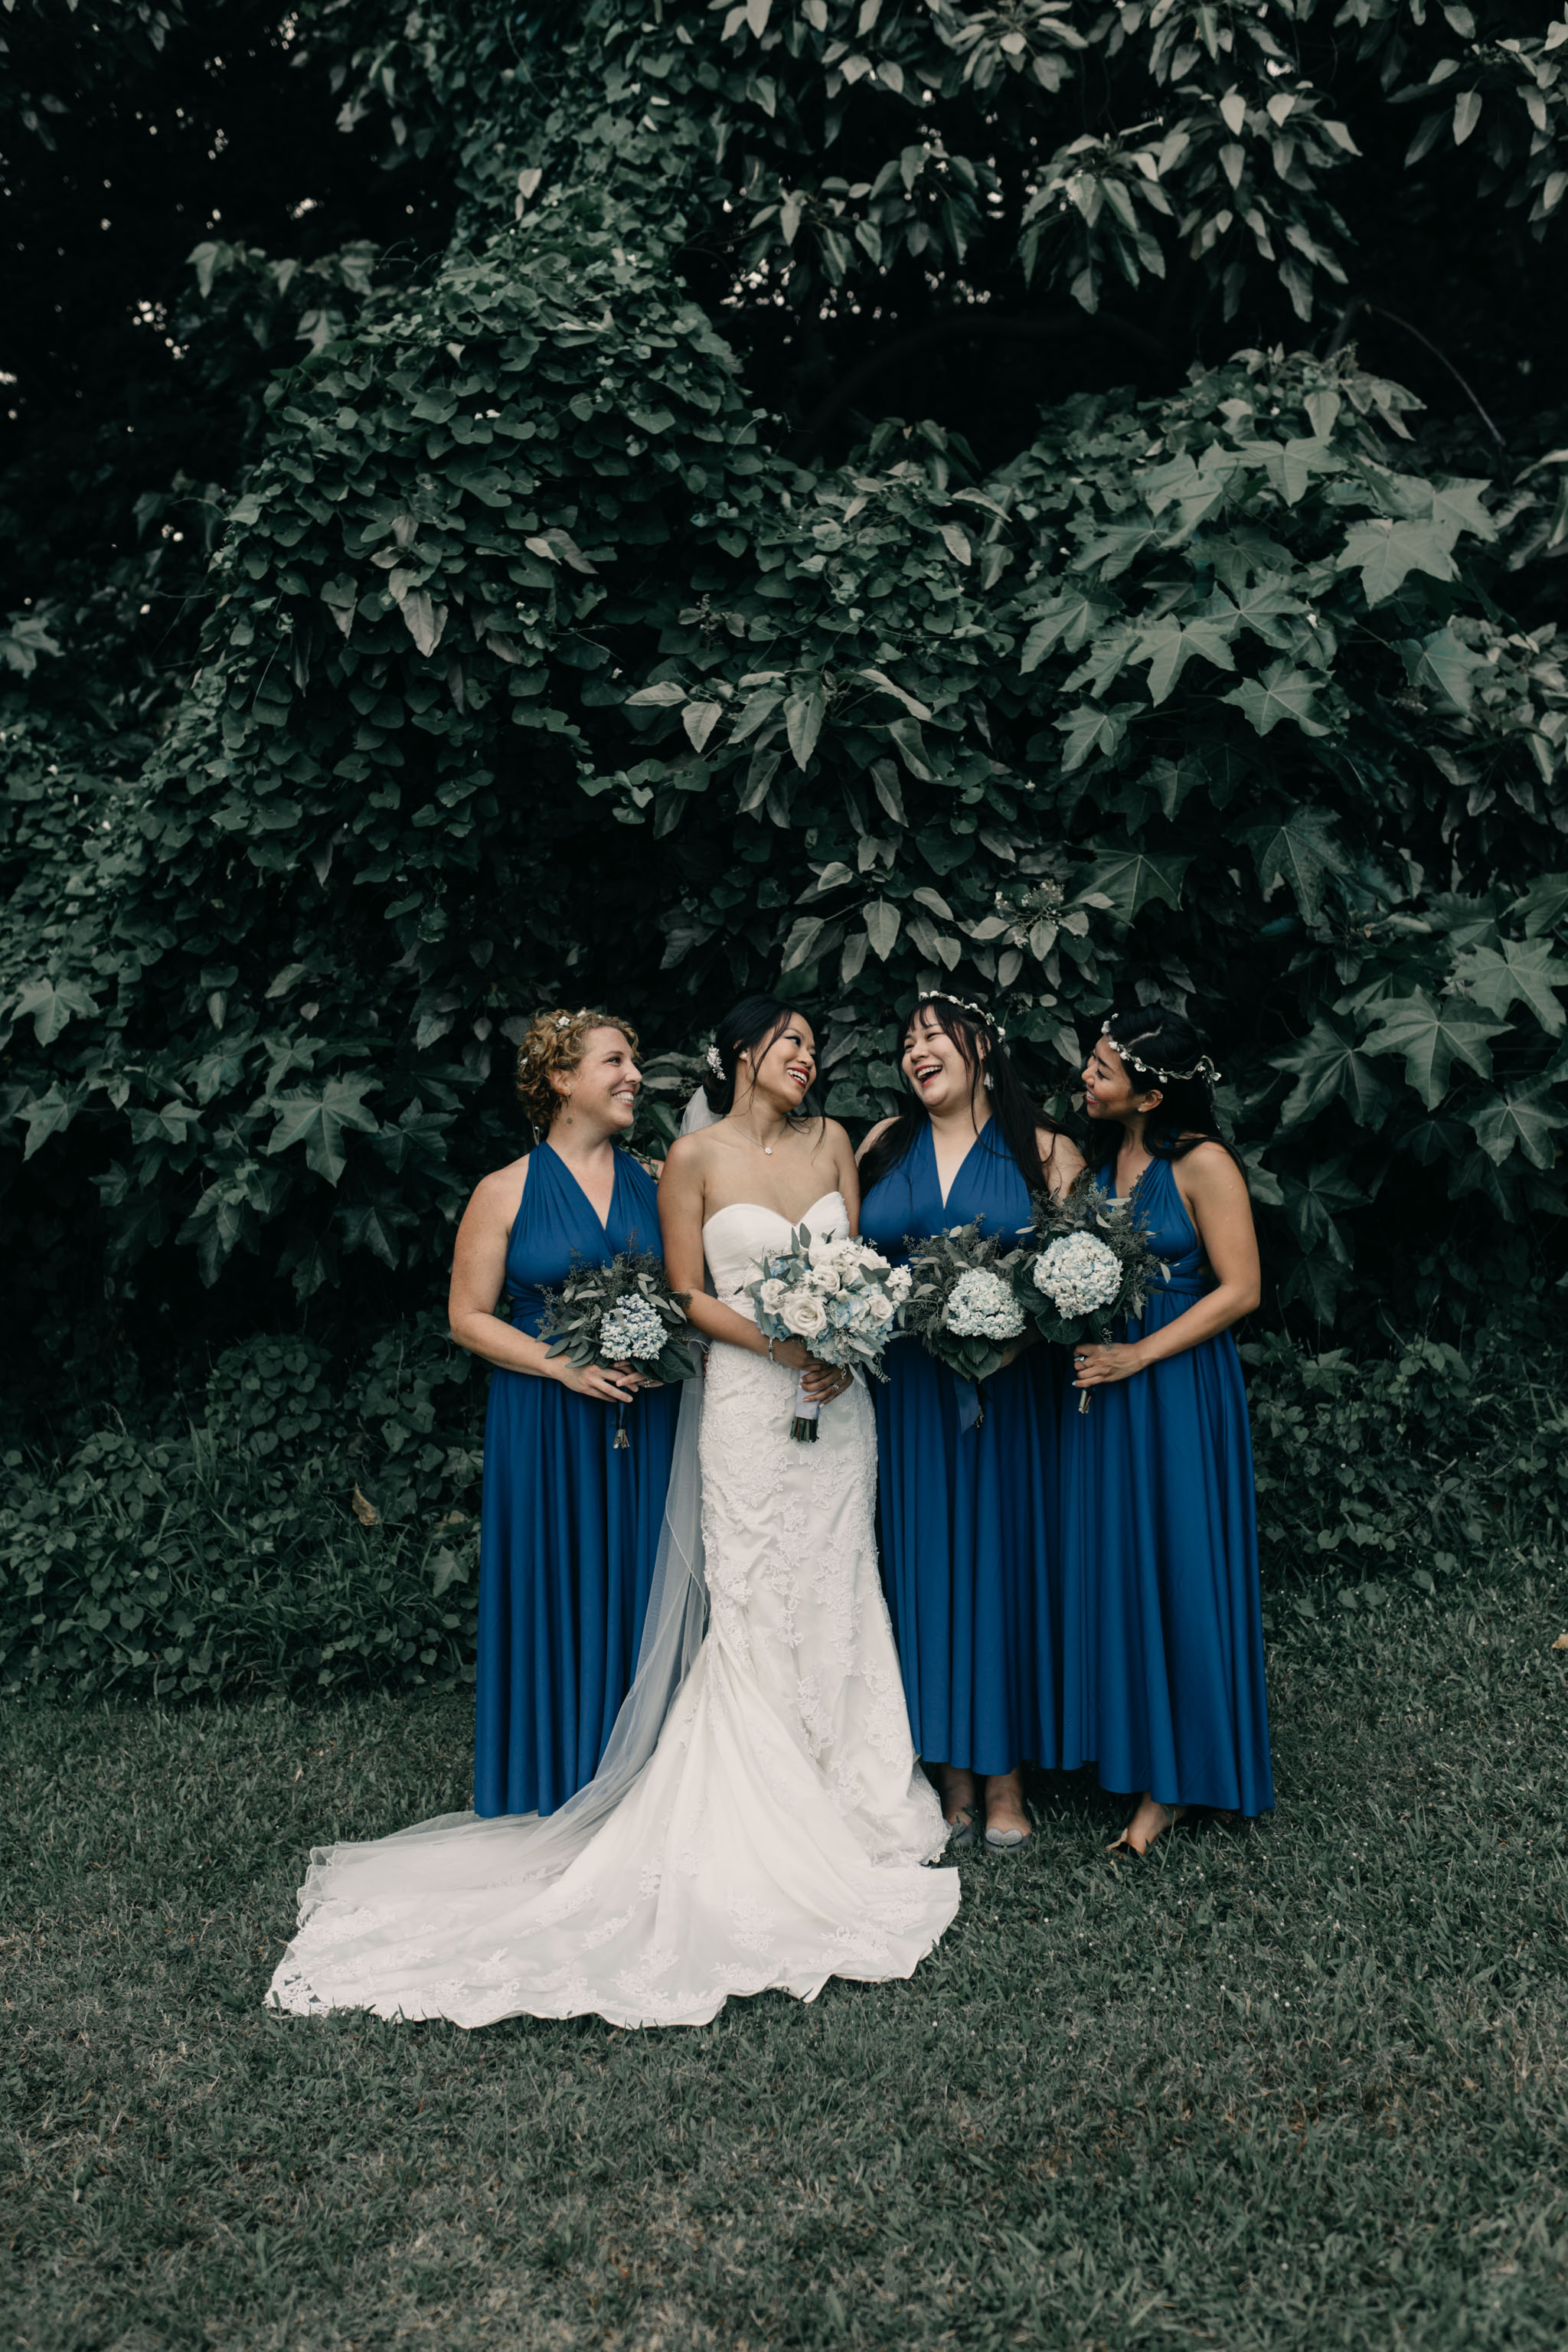 Bridesmaids laughing photo at Kualoa Ranch Paliku Gardens. Photography by Hawaii fine art wedding photographer Desiree Leilani